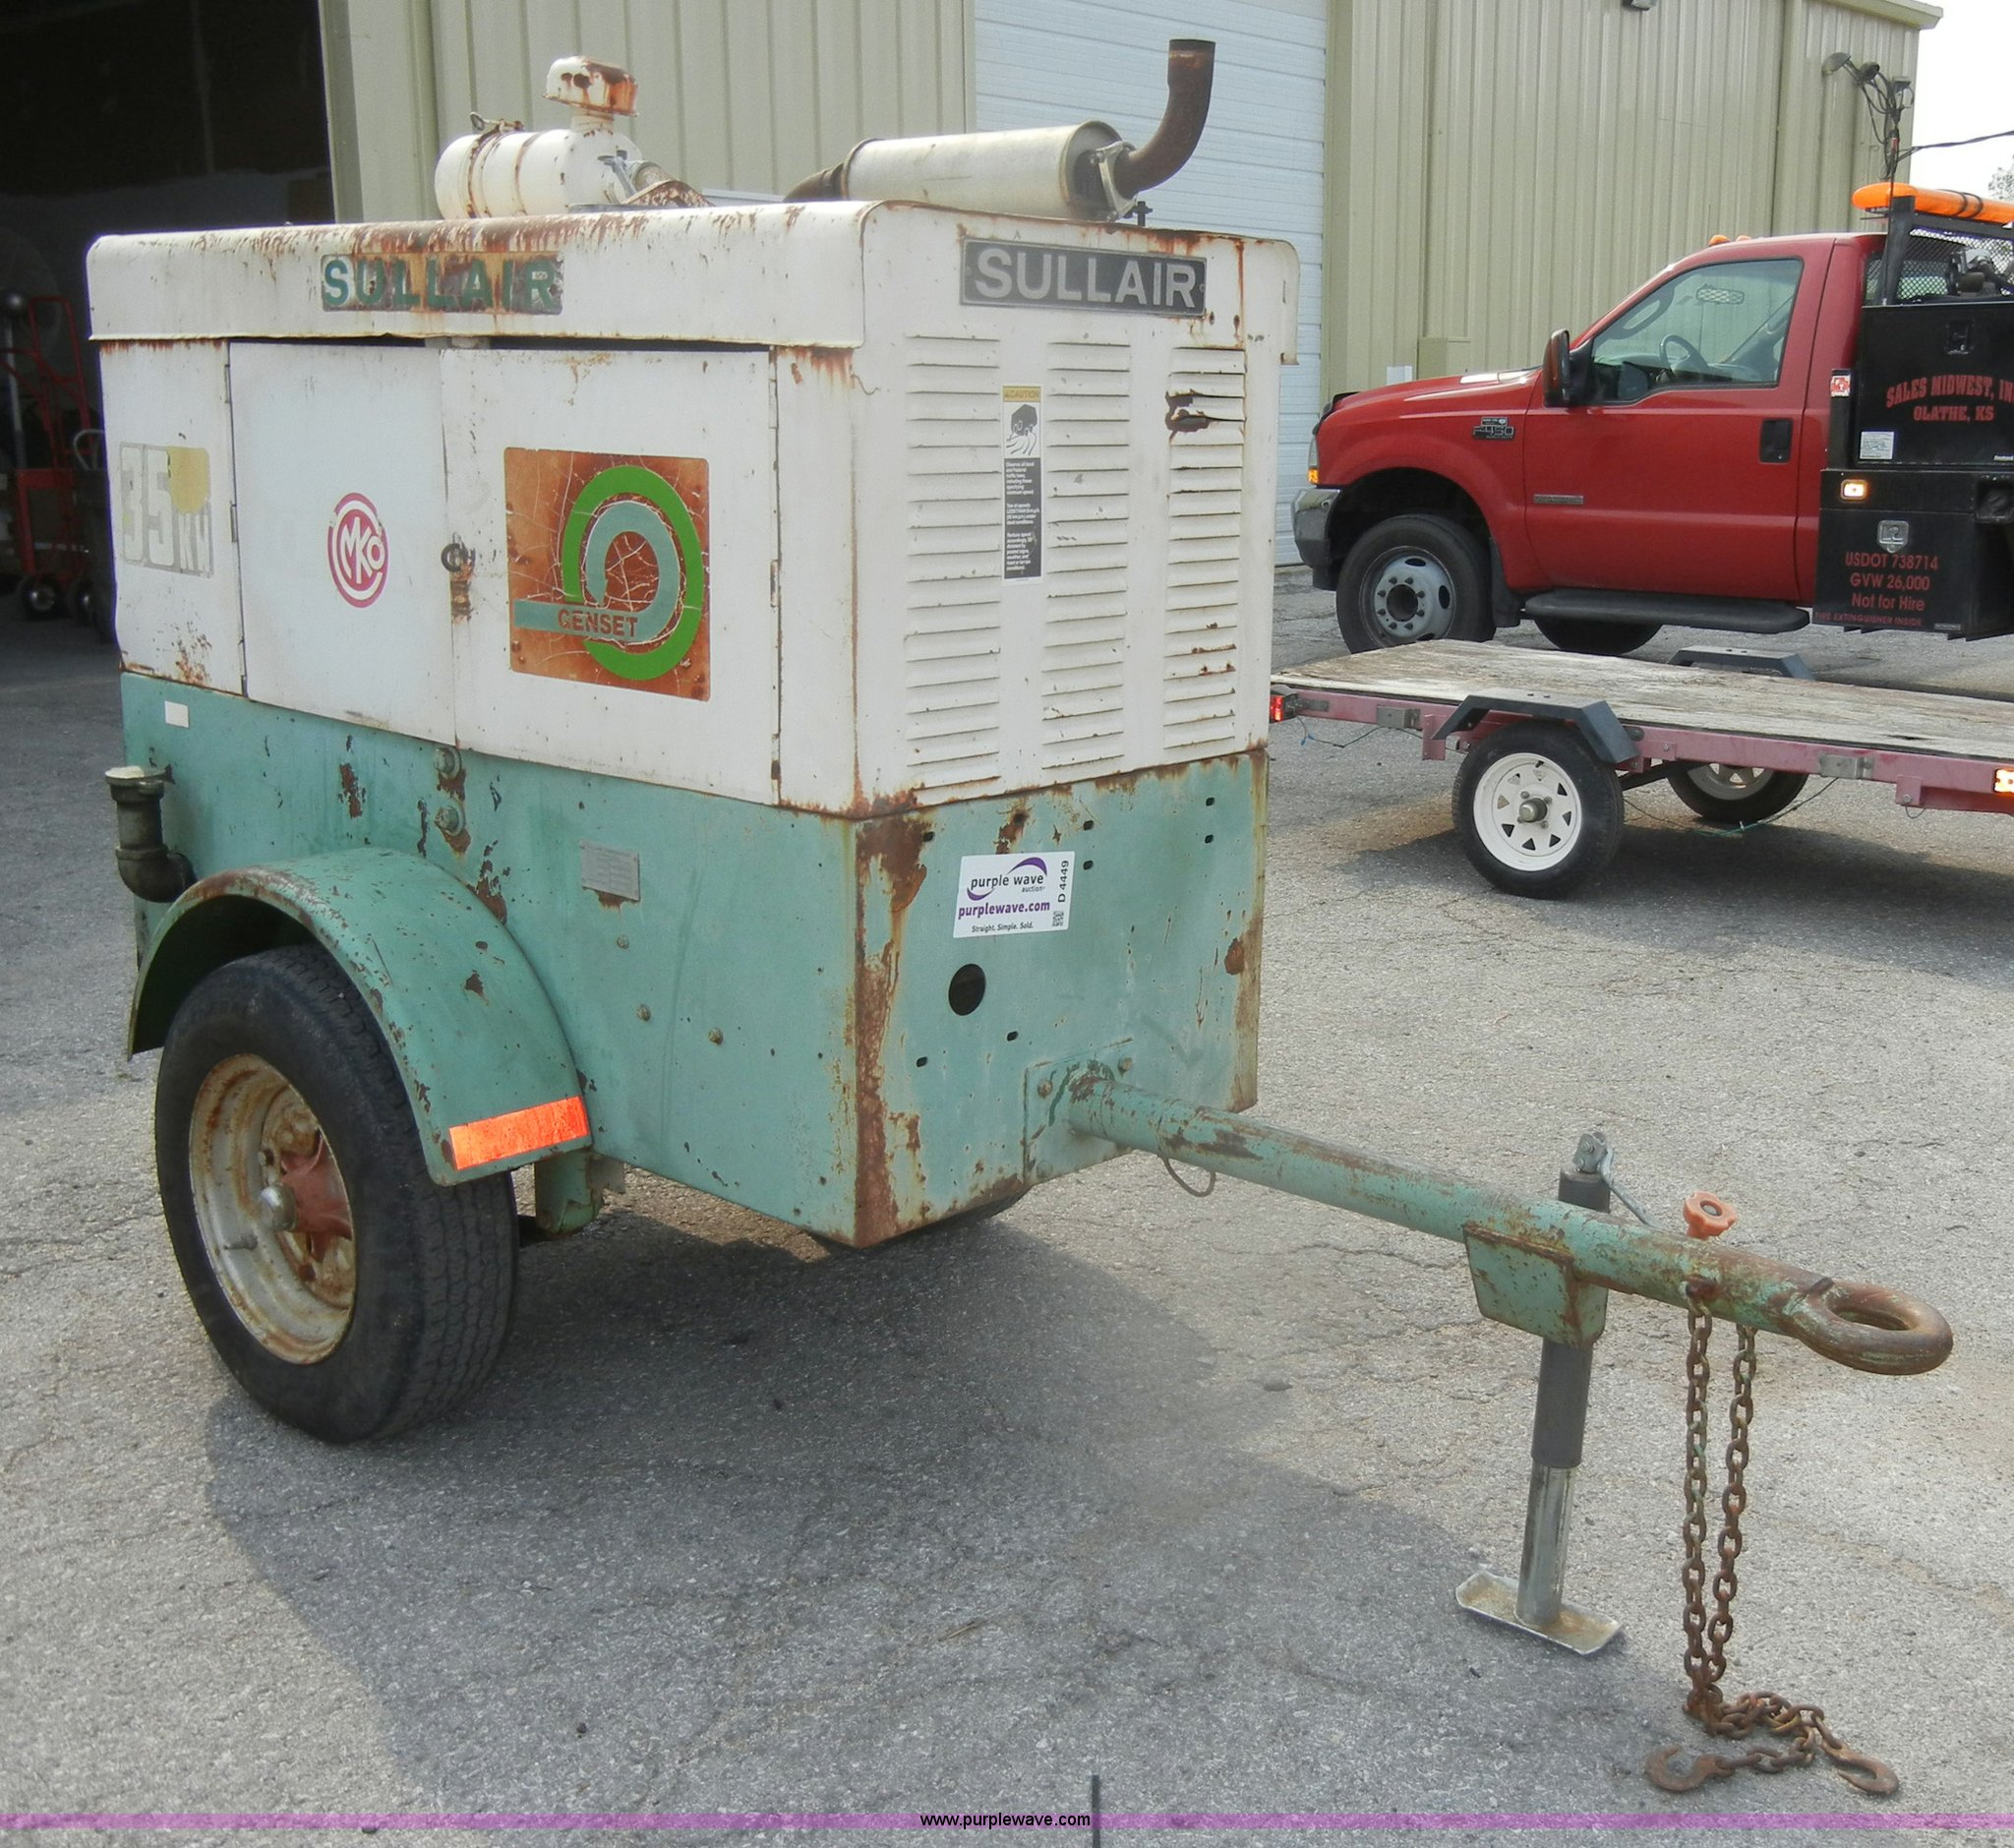 Sullair GenSet 35 kW generator Item D4449